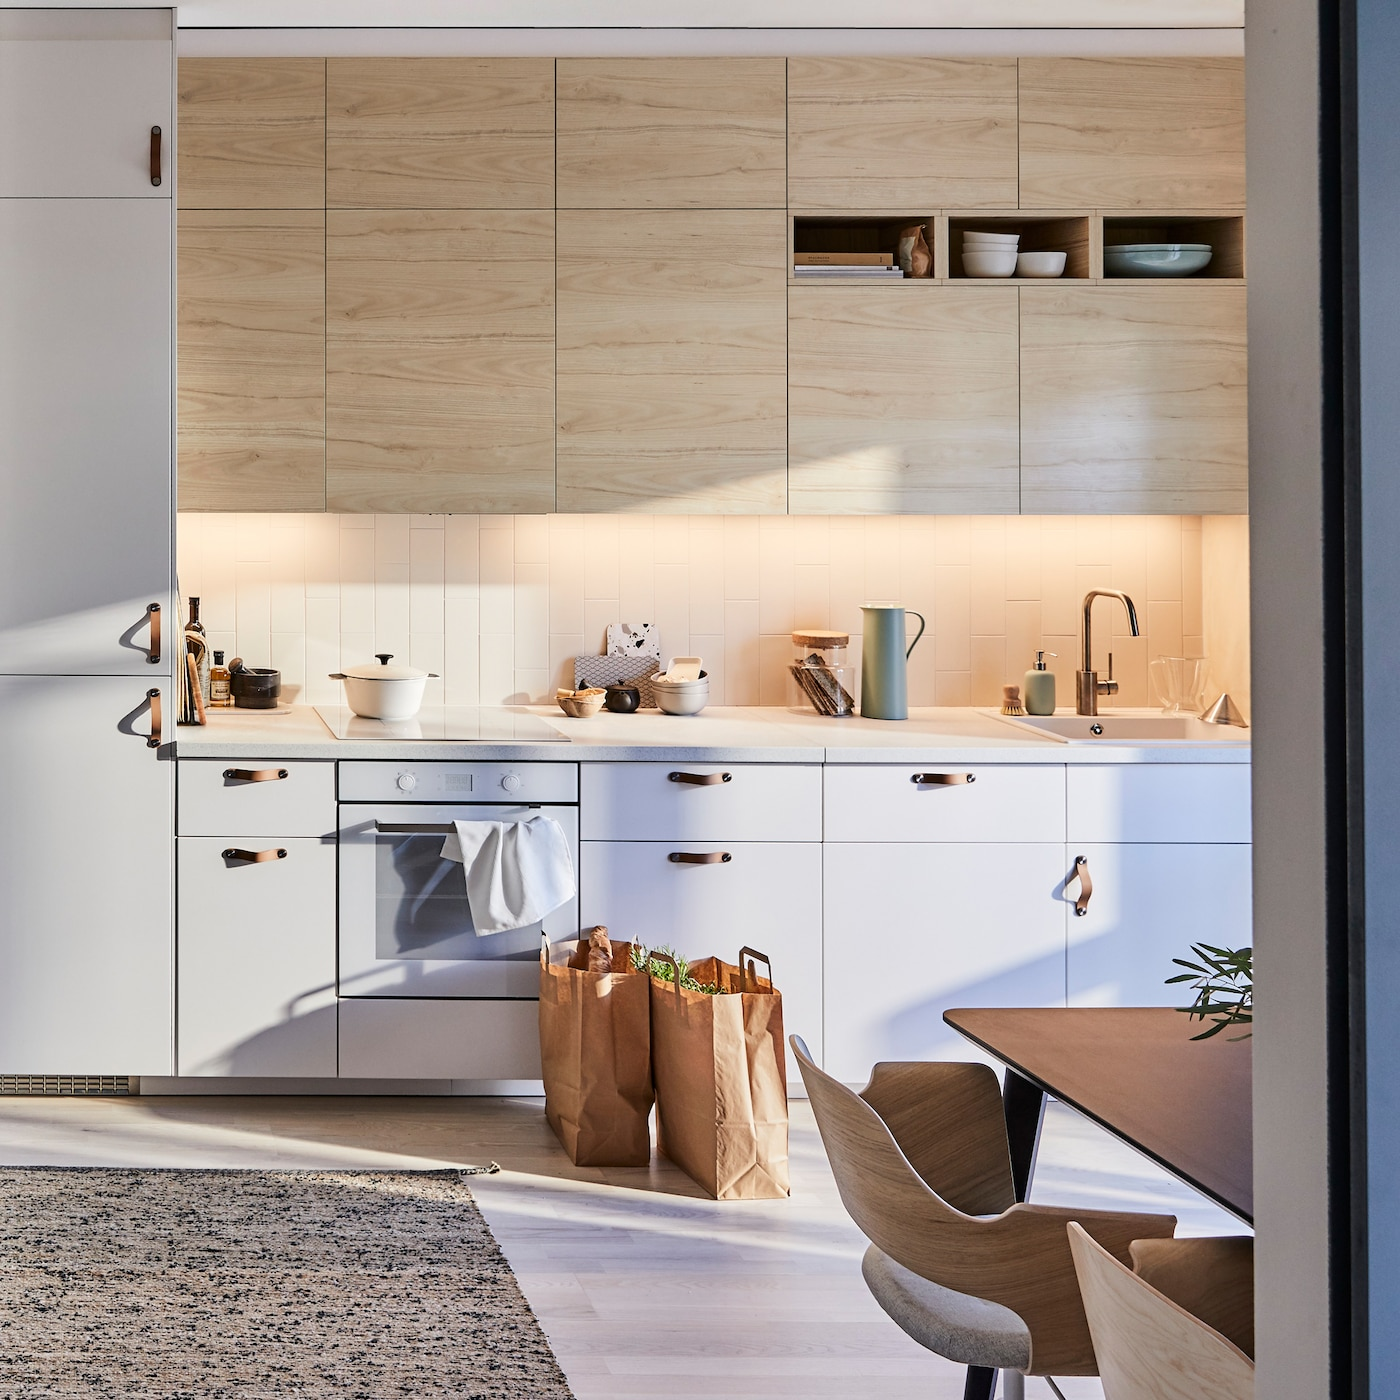 IKEA METOD kitchen with light wood ASKERSUND ash effect door fronts pair well with a MELHOLT flatwoven rug woven from jute and wool for a zen kitchen.